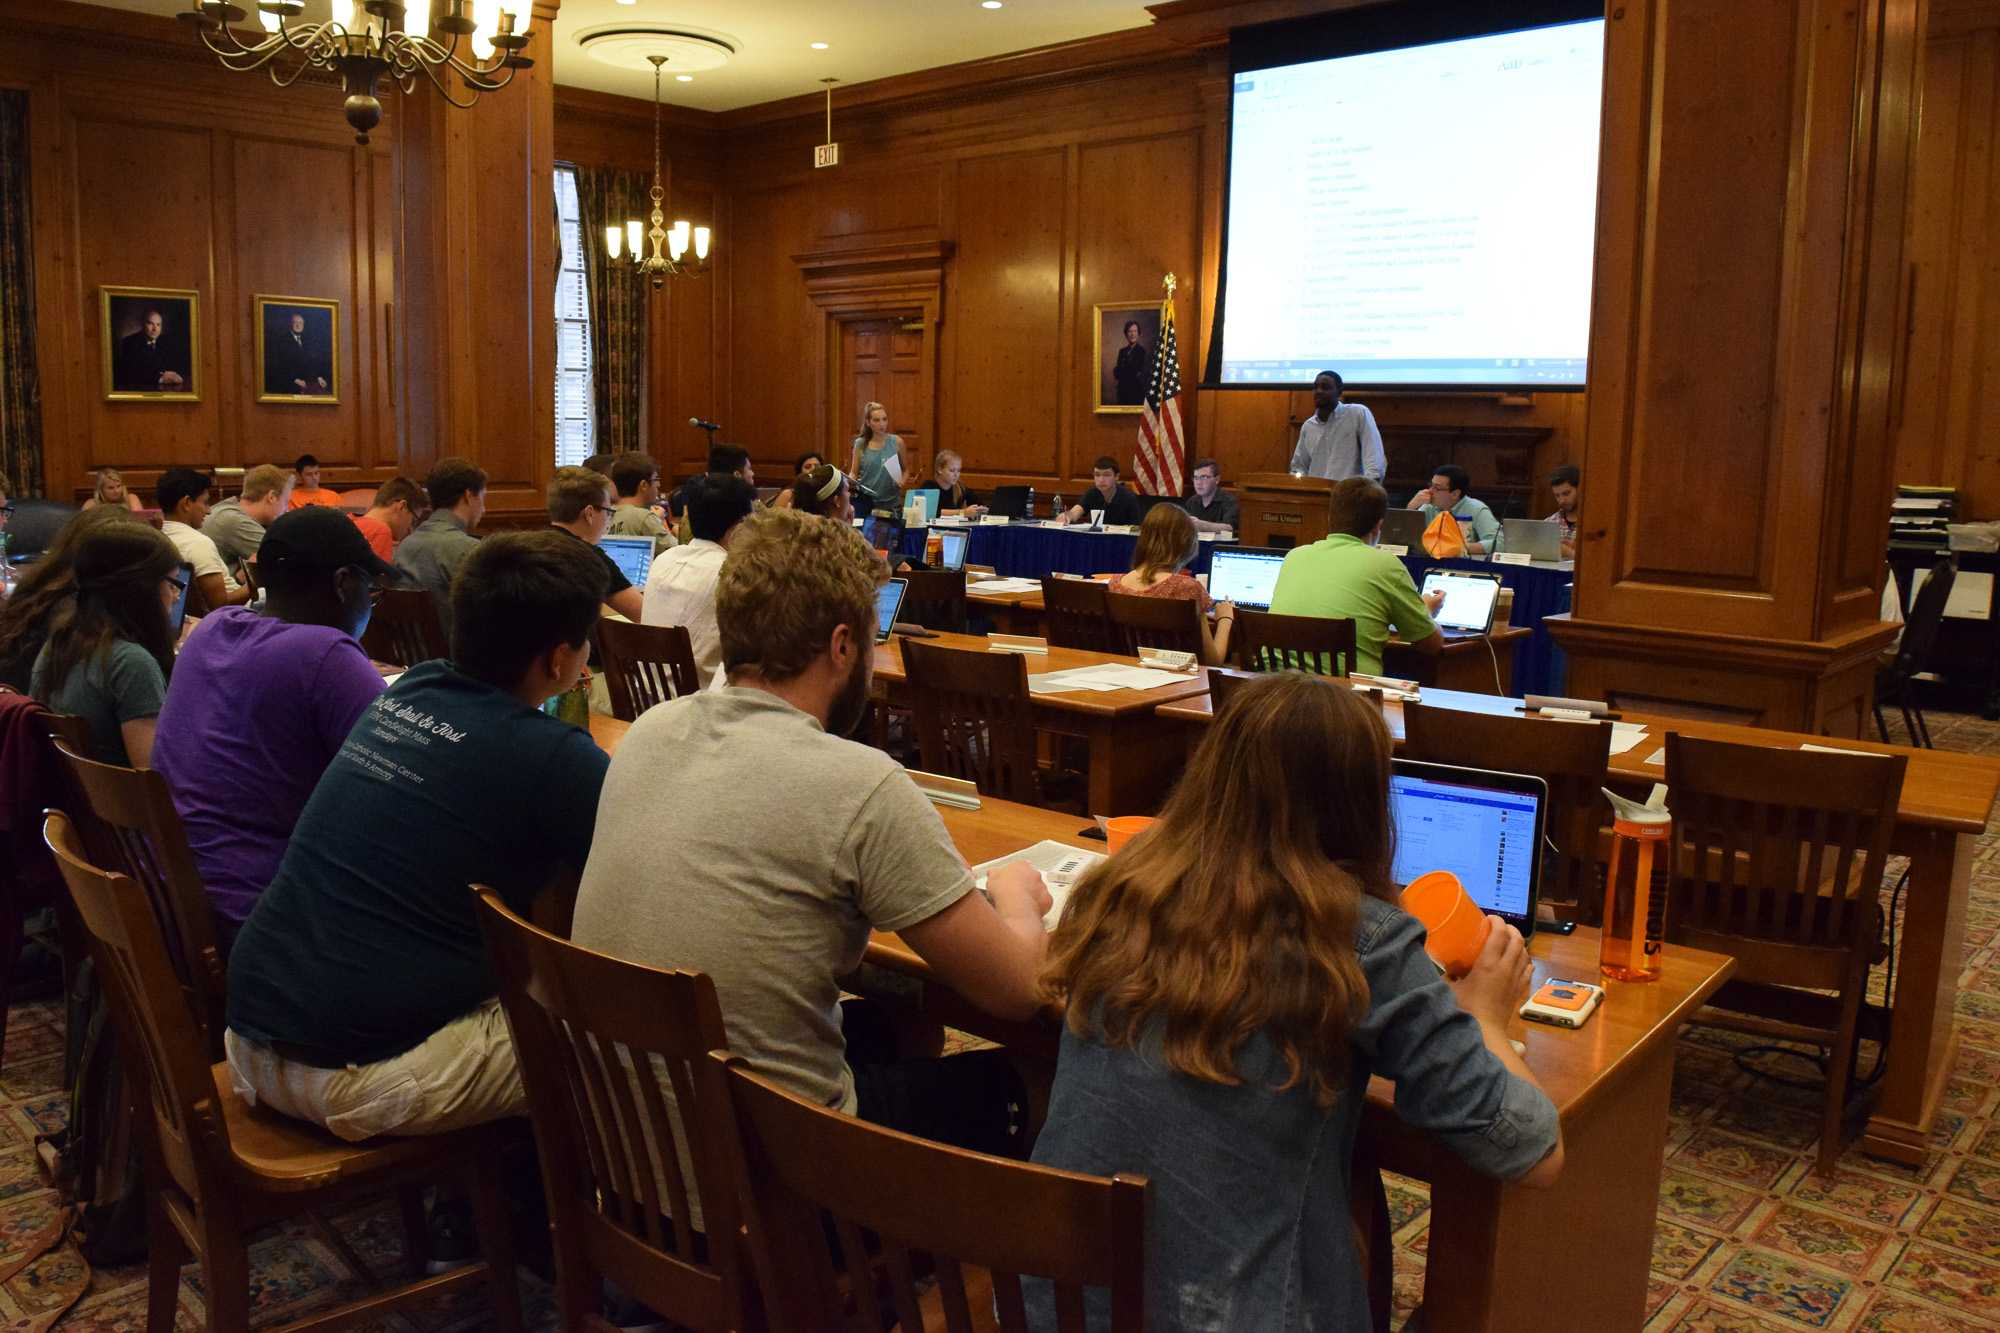 The Illinois Student Senate gathers in the Illini Union. The group is voting to ratify a new constitution.